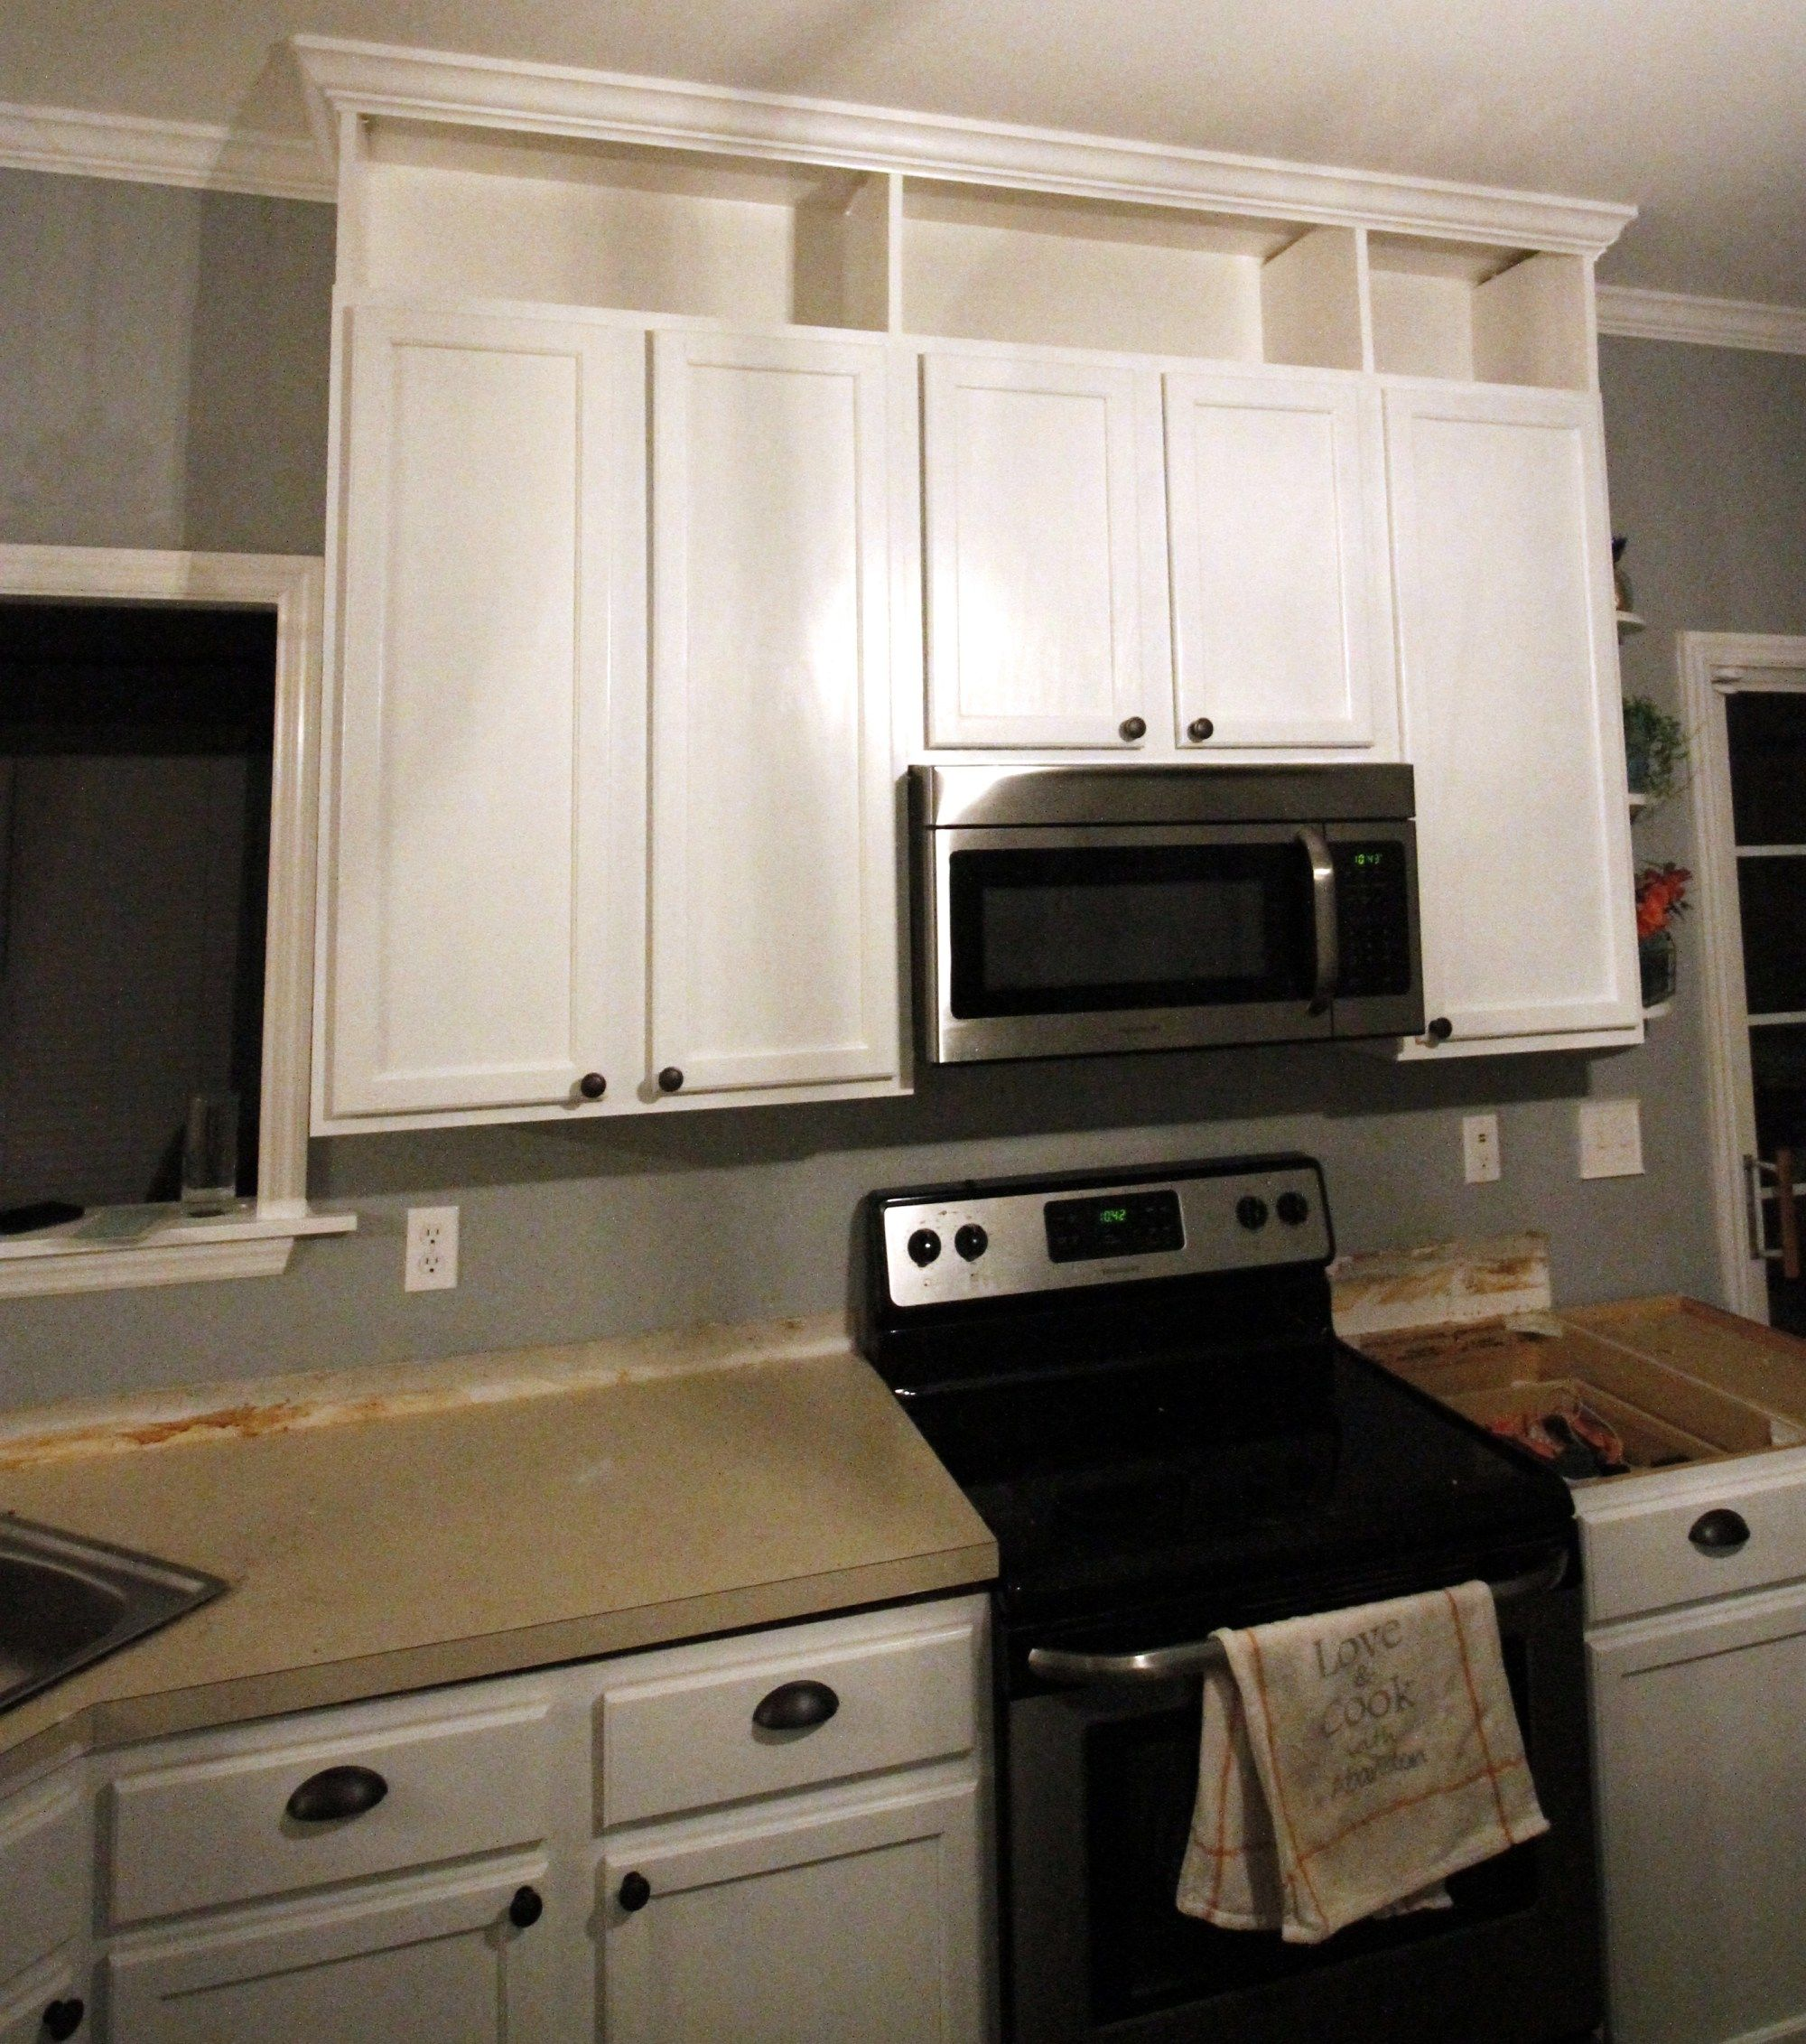 How To Extend Kitchen Cabinets To The Ceiling Diy Kitchen Renovation Kitchen Renovation Kitchen Cabinets To Ceiling